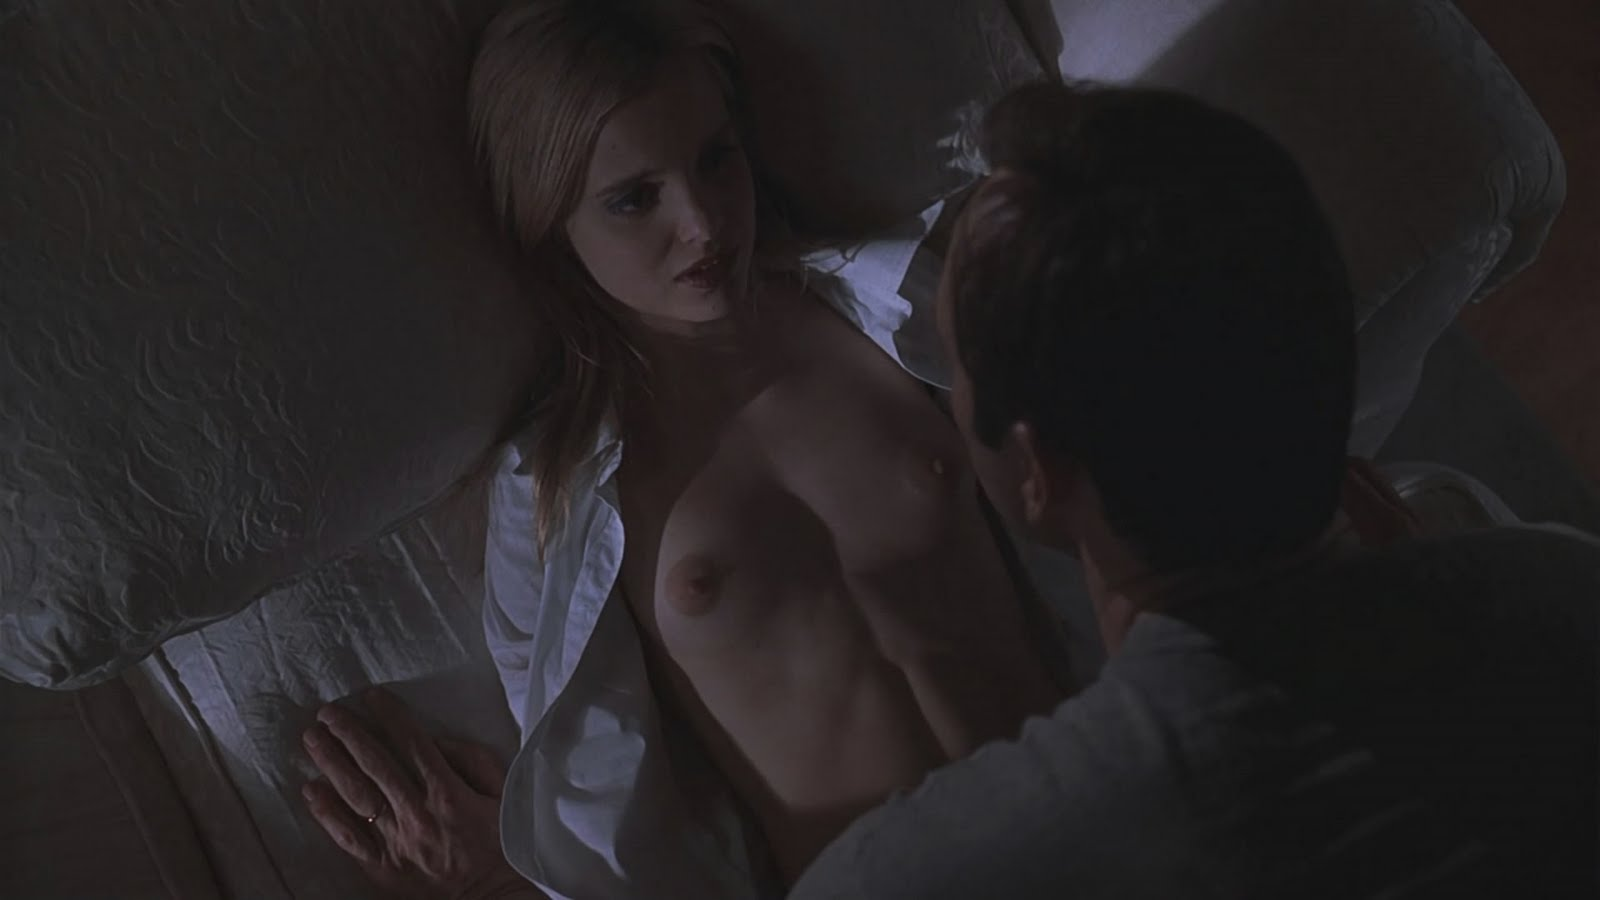 American beauty the movie nude